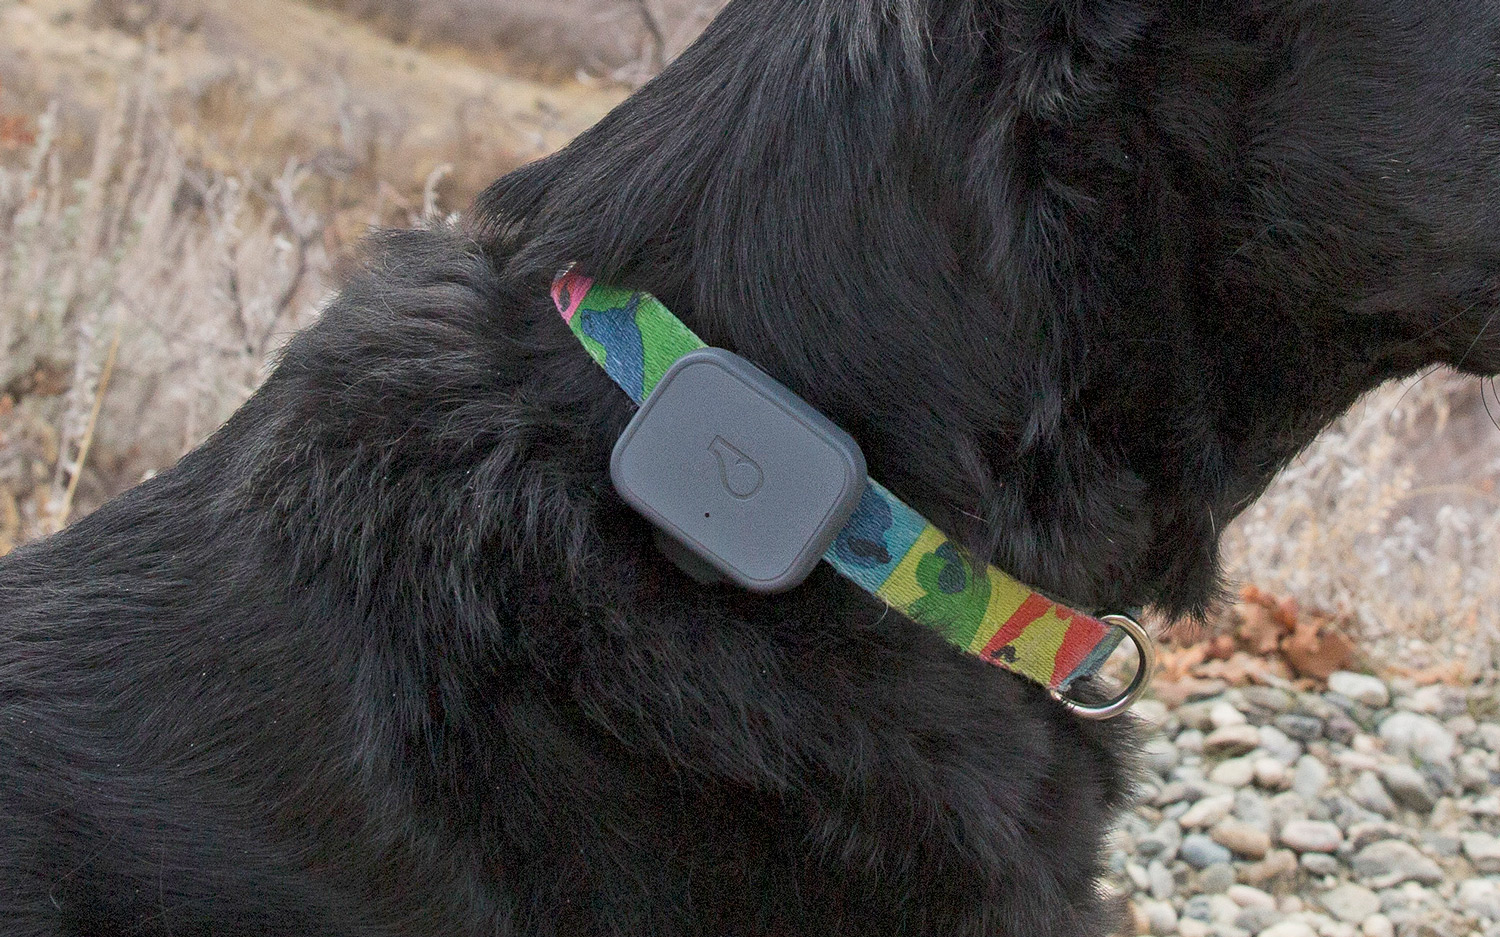 Best Pet Tracking Devices 2019 - GPS Trackers for Dogs, Cats | Top